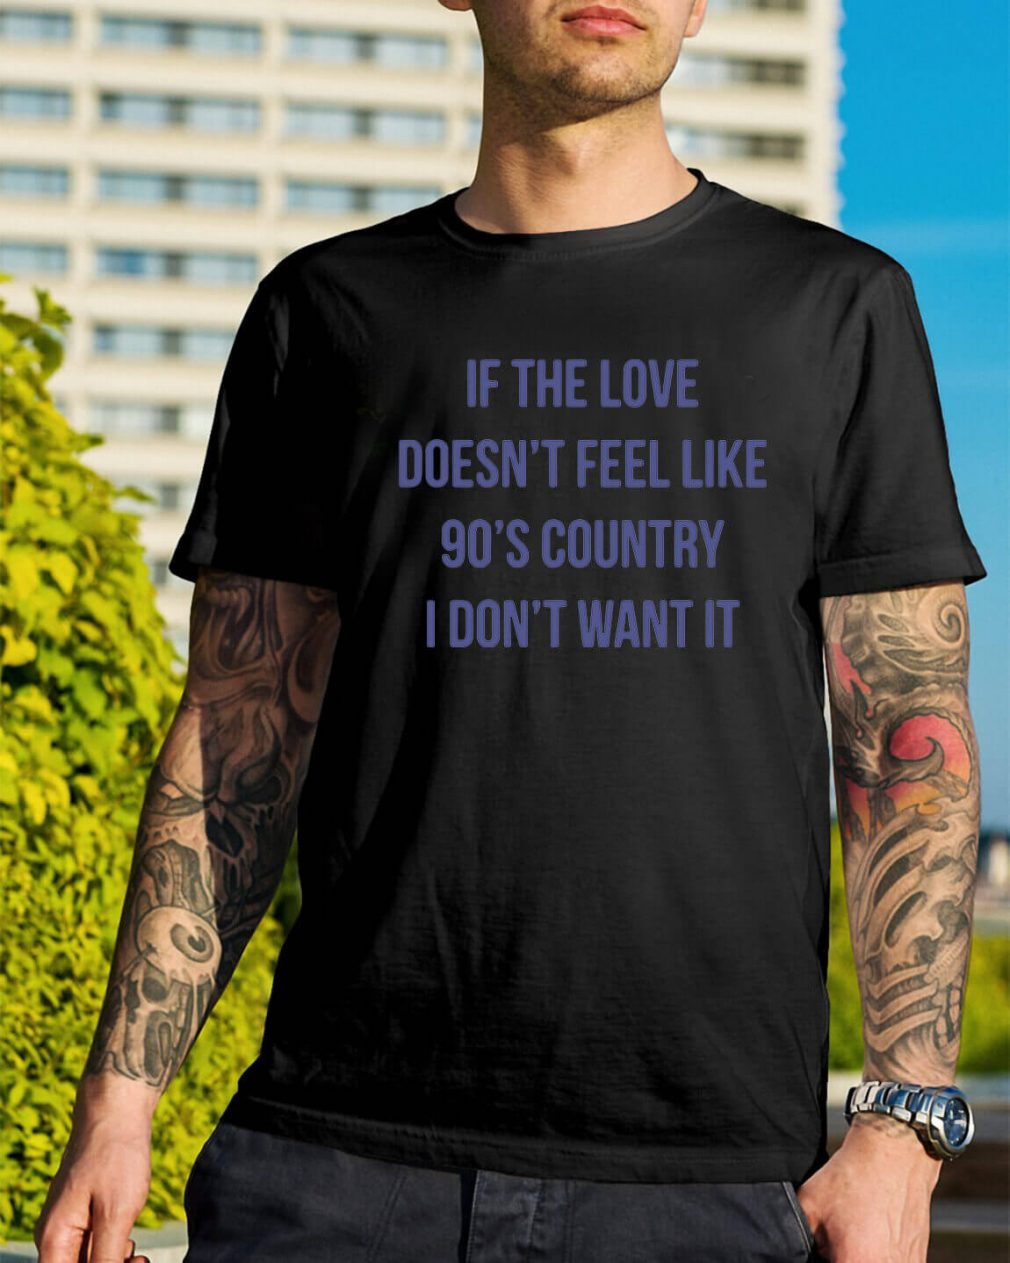 If the love doesn't feel like 90's country I don't want it shirt